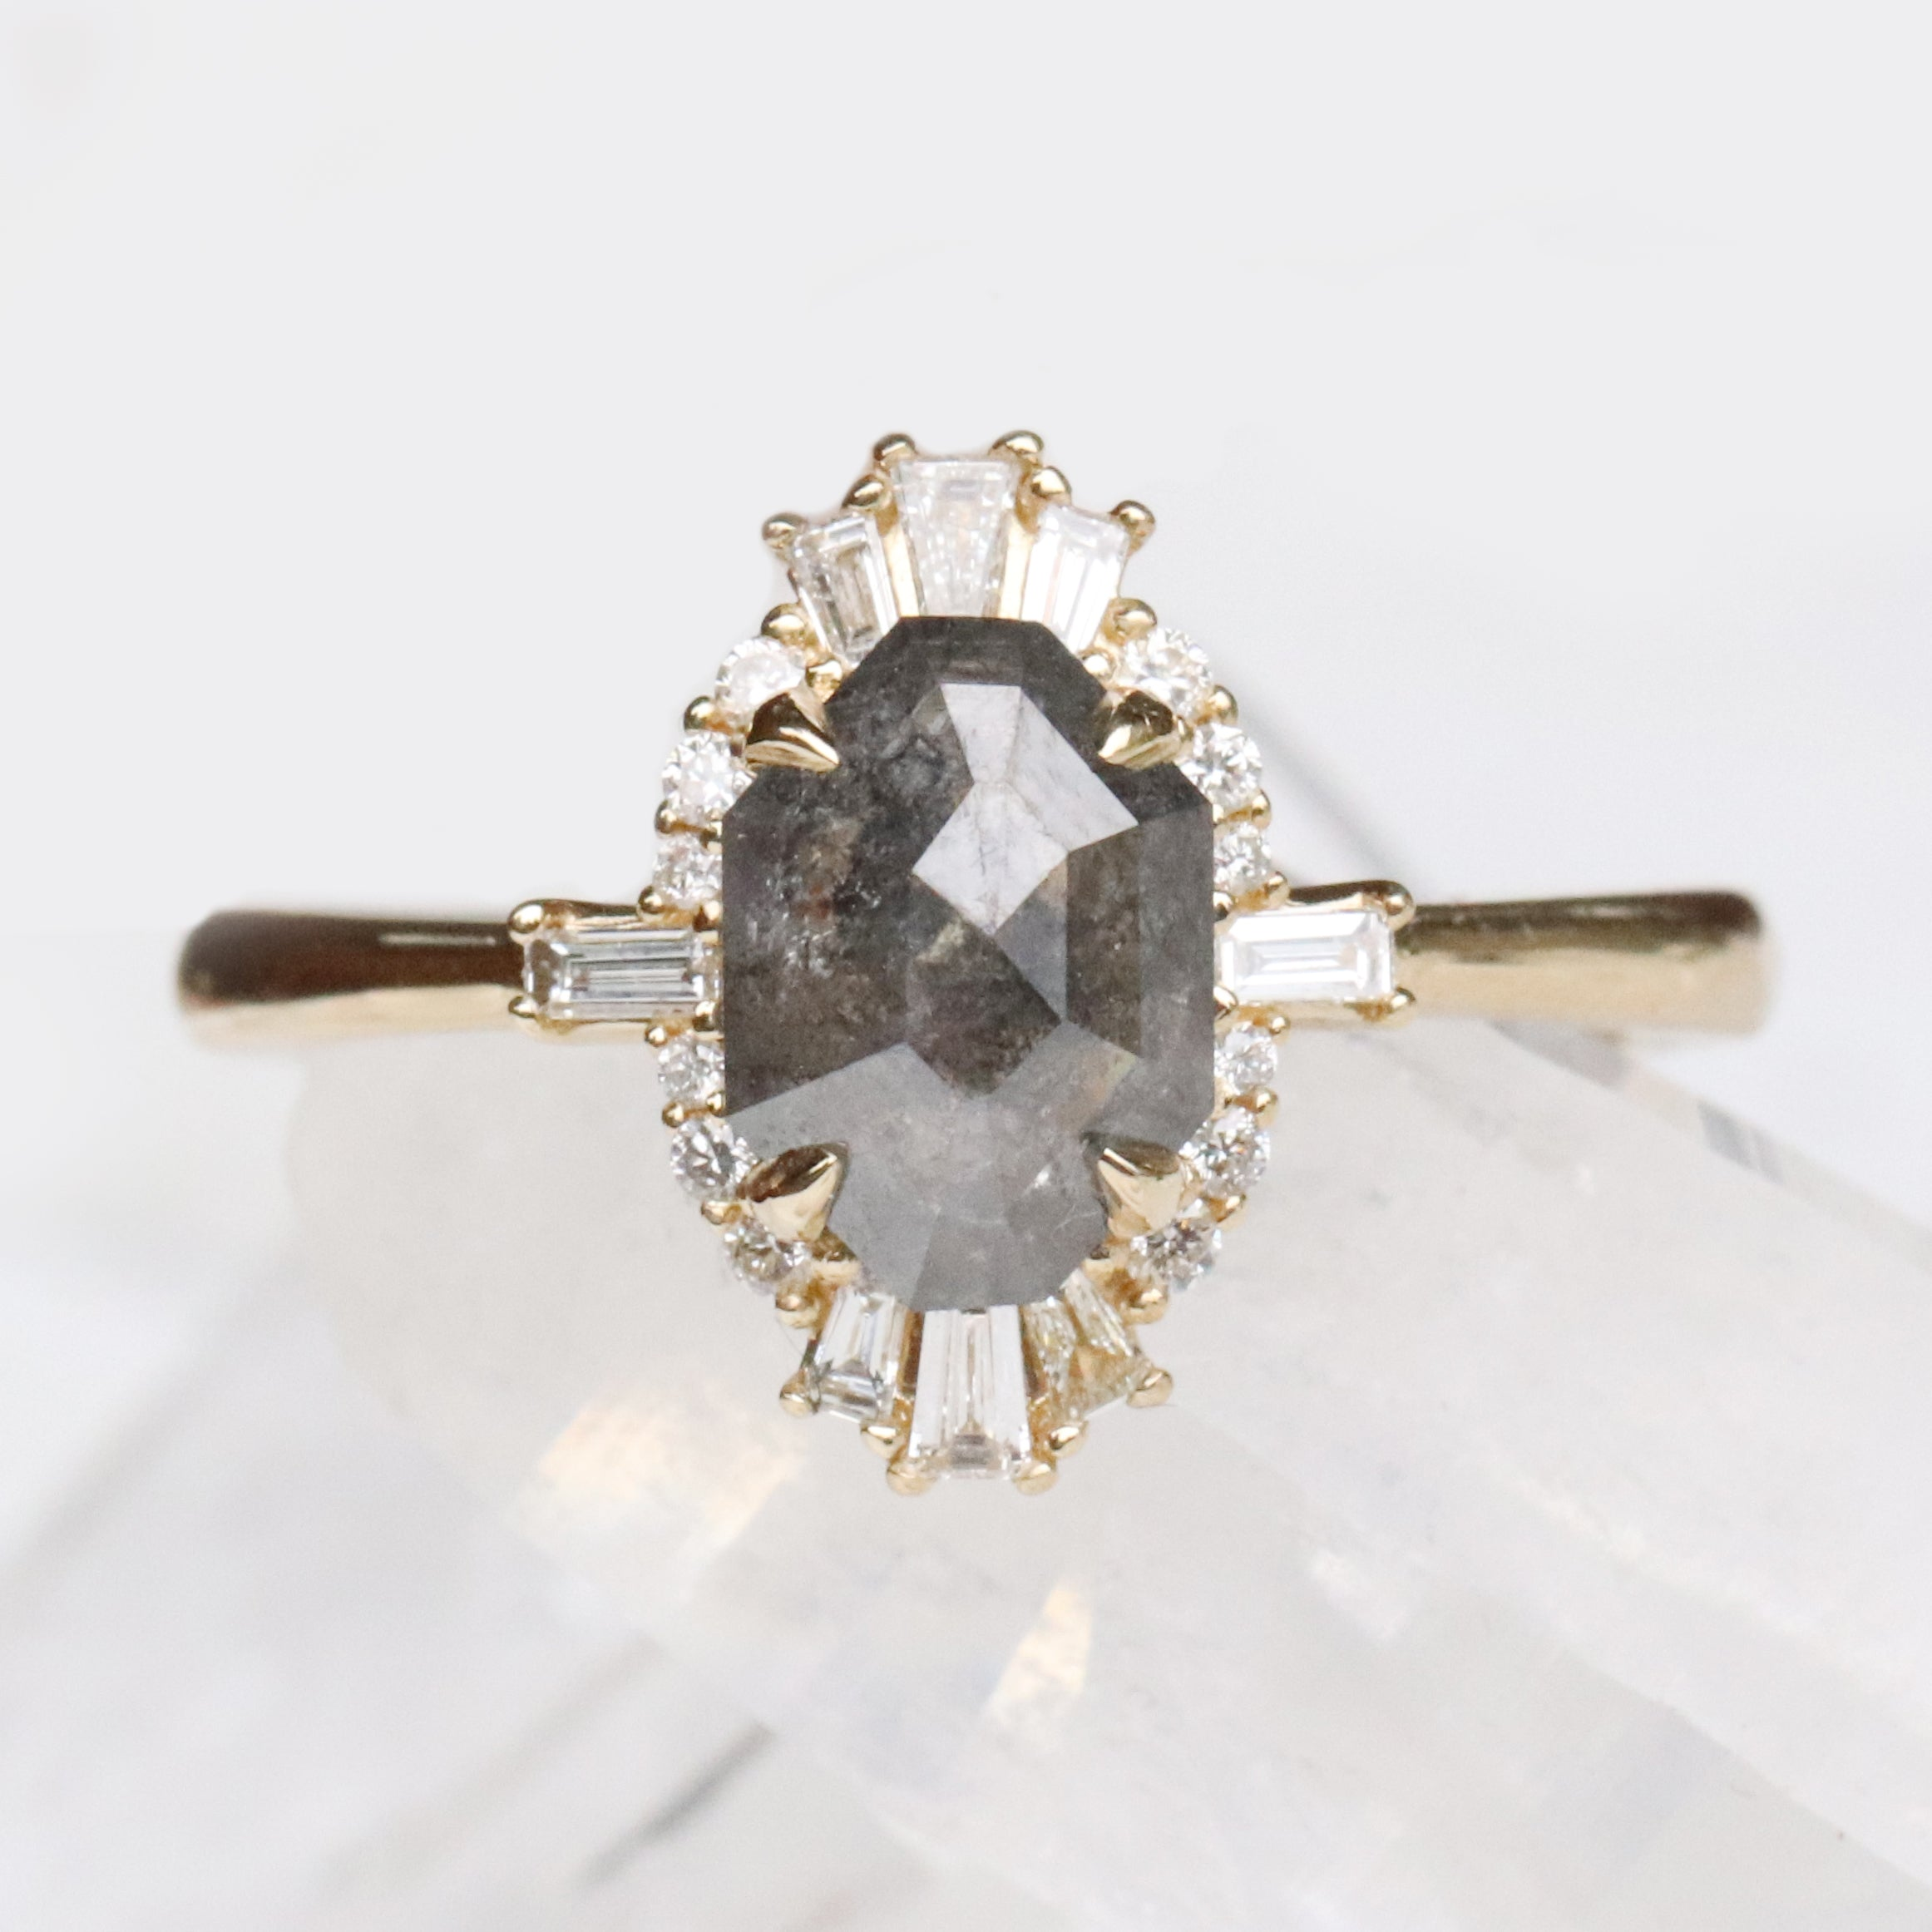 Ophelia Ring with 1.35 carat Celestial Diamond in 14k Yellow Gold - Ready to Size and Ship - Salt & Pepper Celestial Diamond Engagement Rings and Wedding Bands  by Midwinter Co.